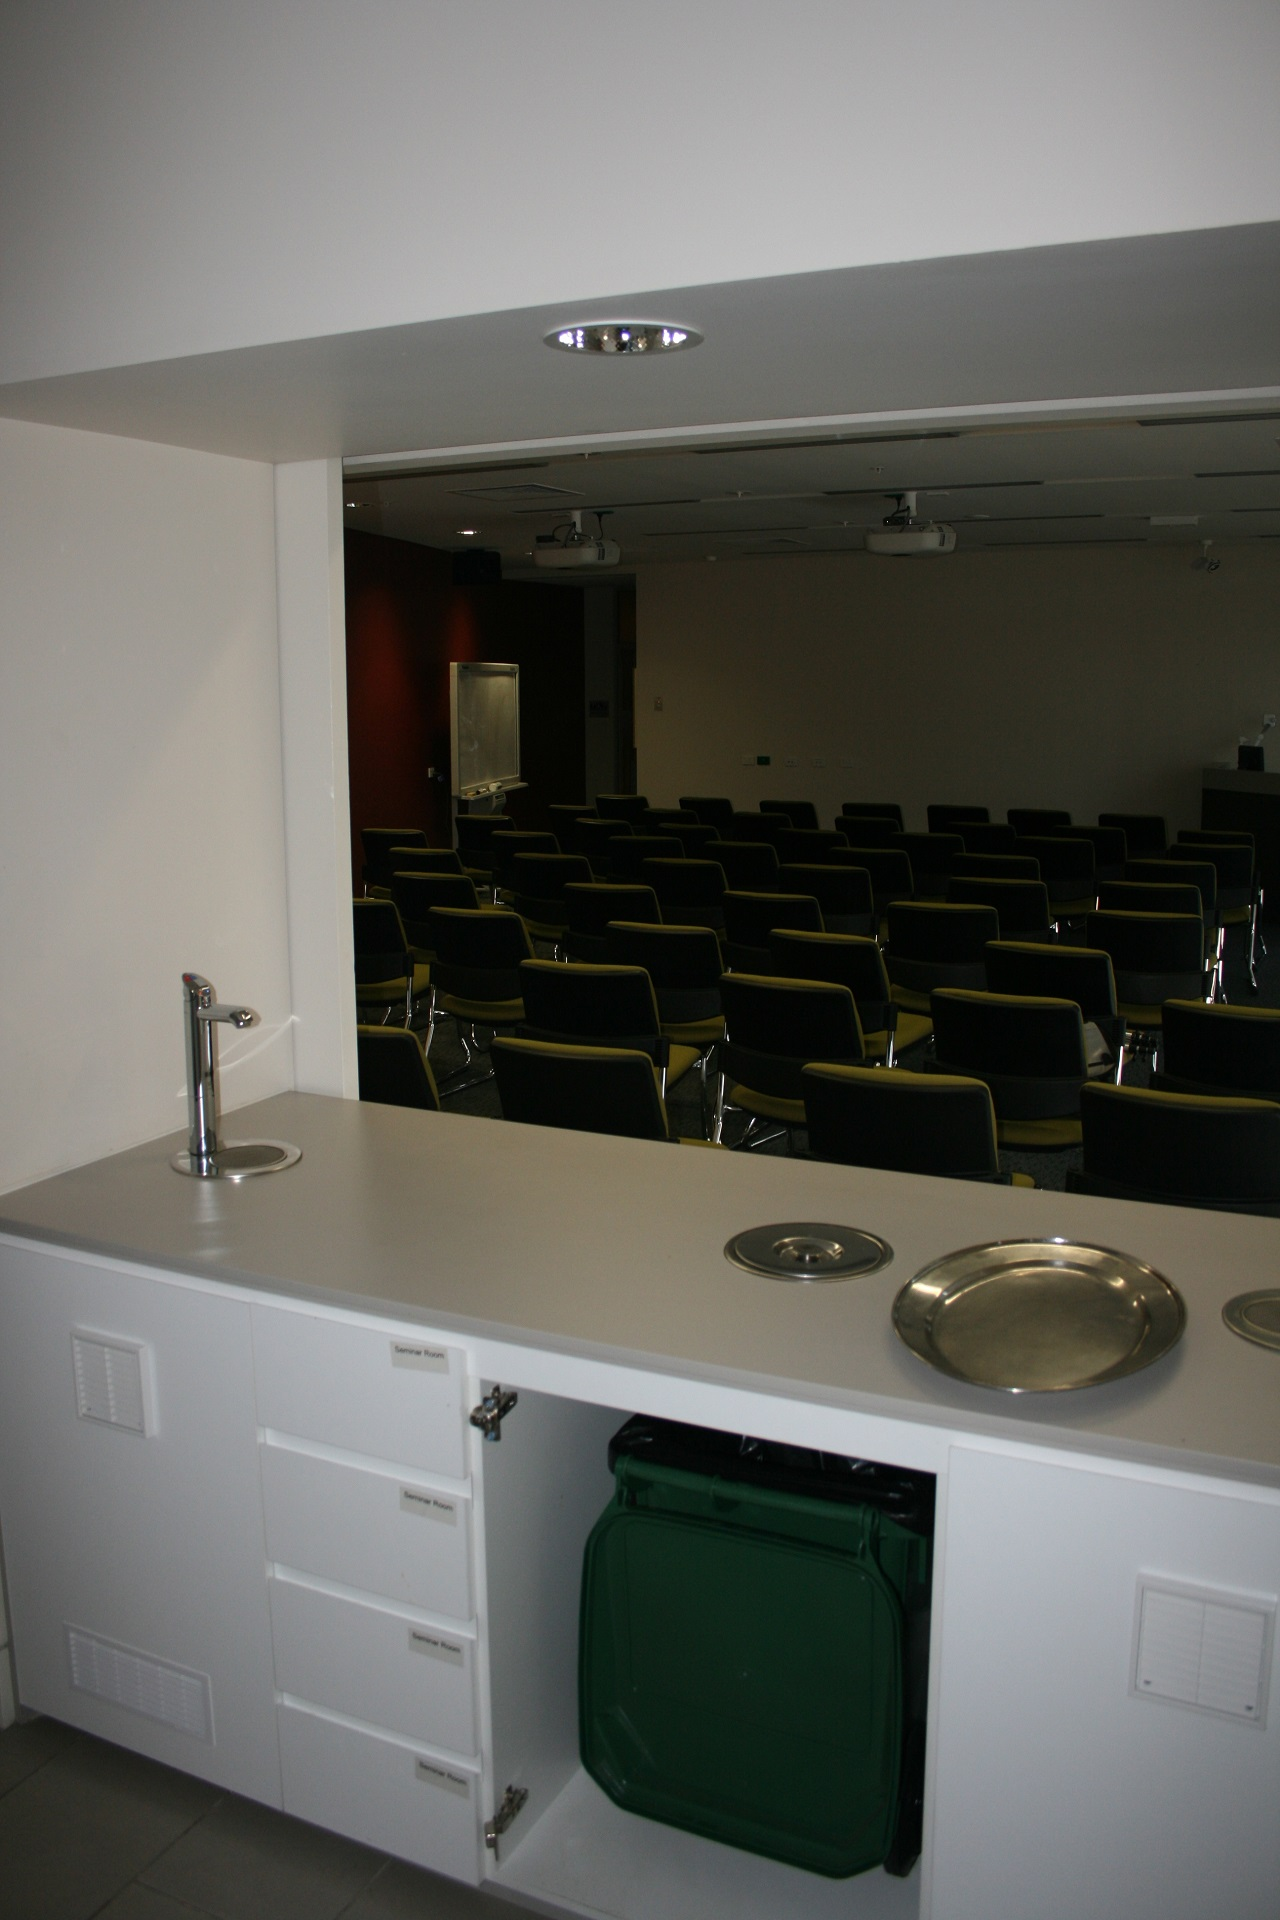 Picture of room 145-030 kitchen